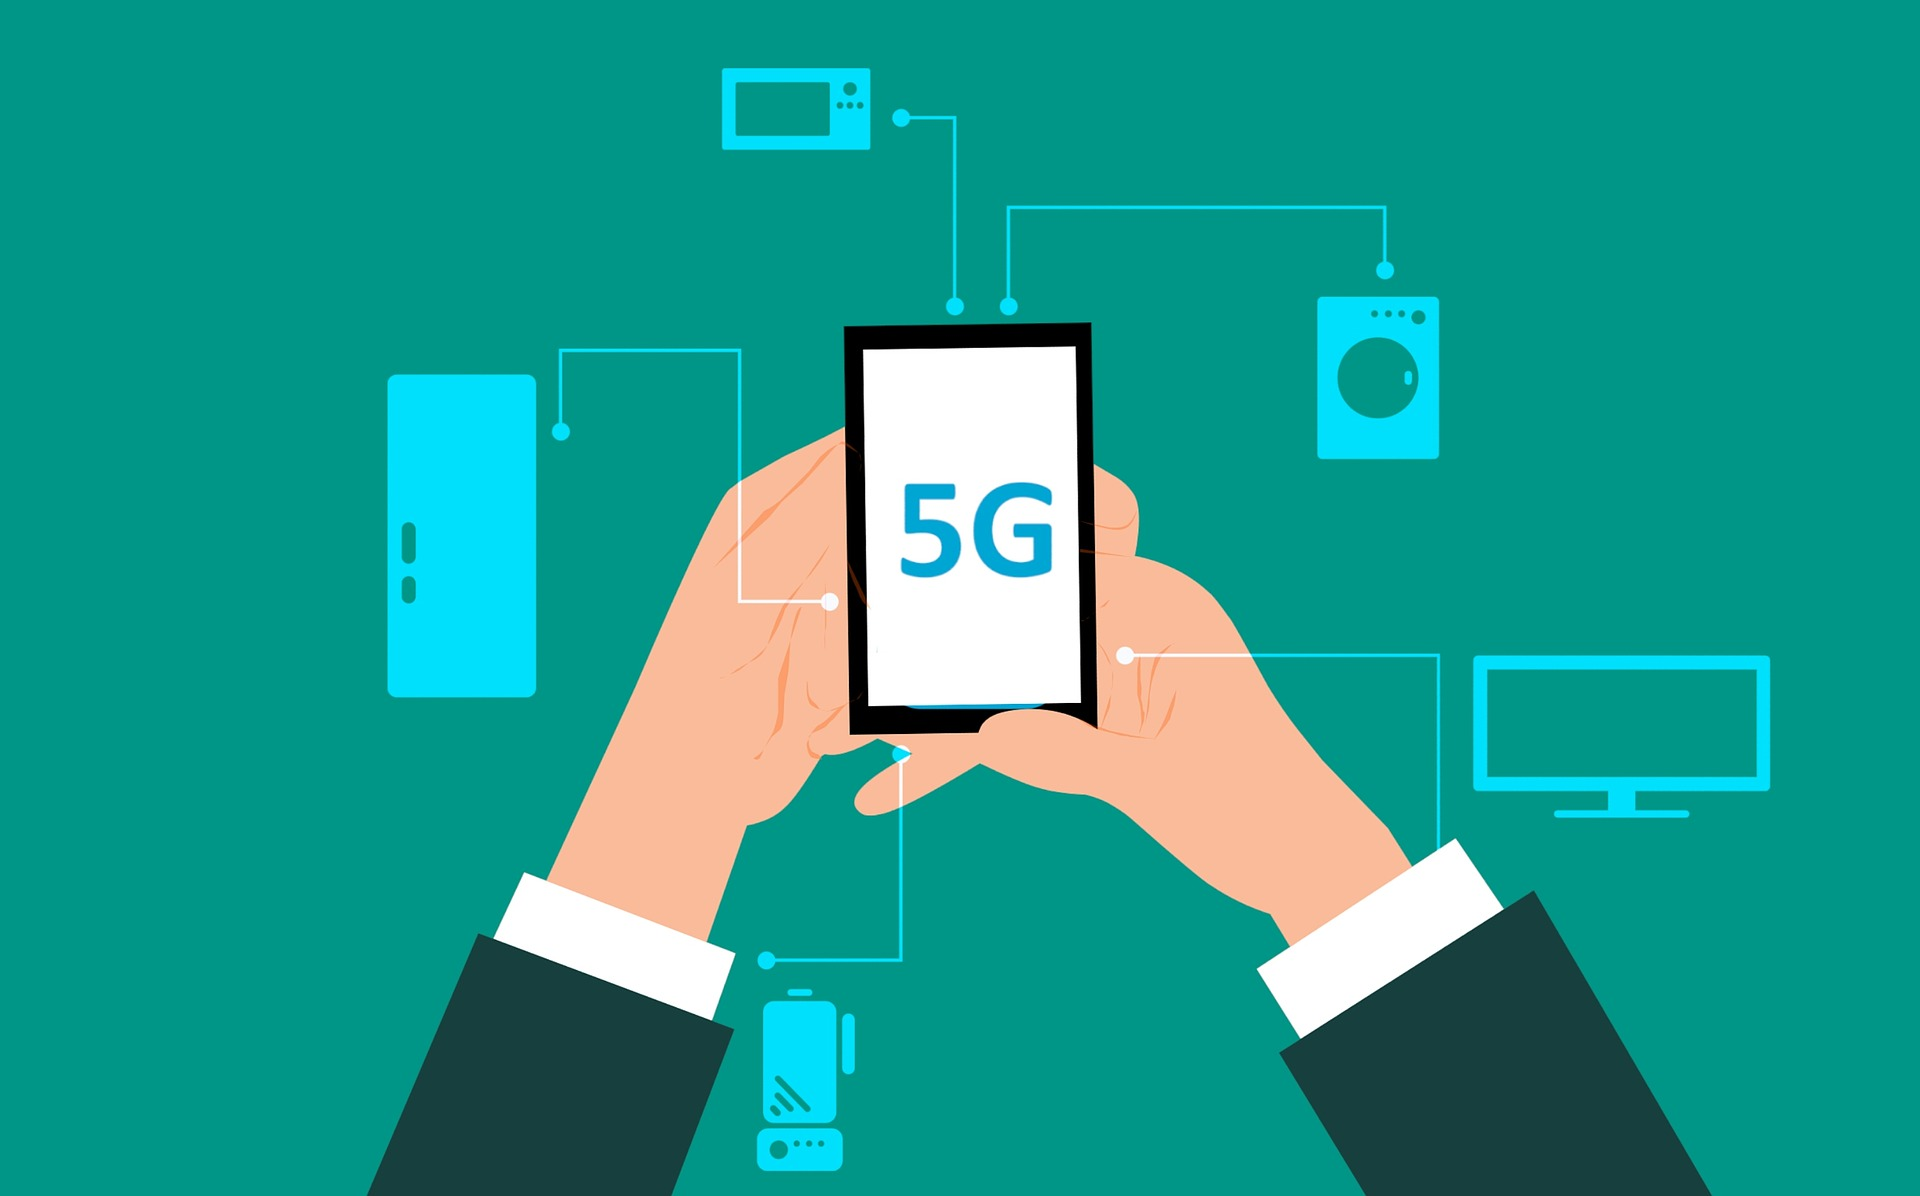 How will 5G affect digital marketing?